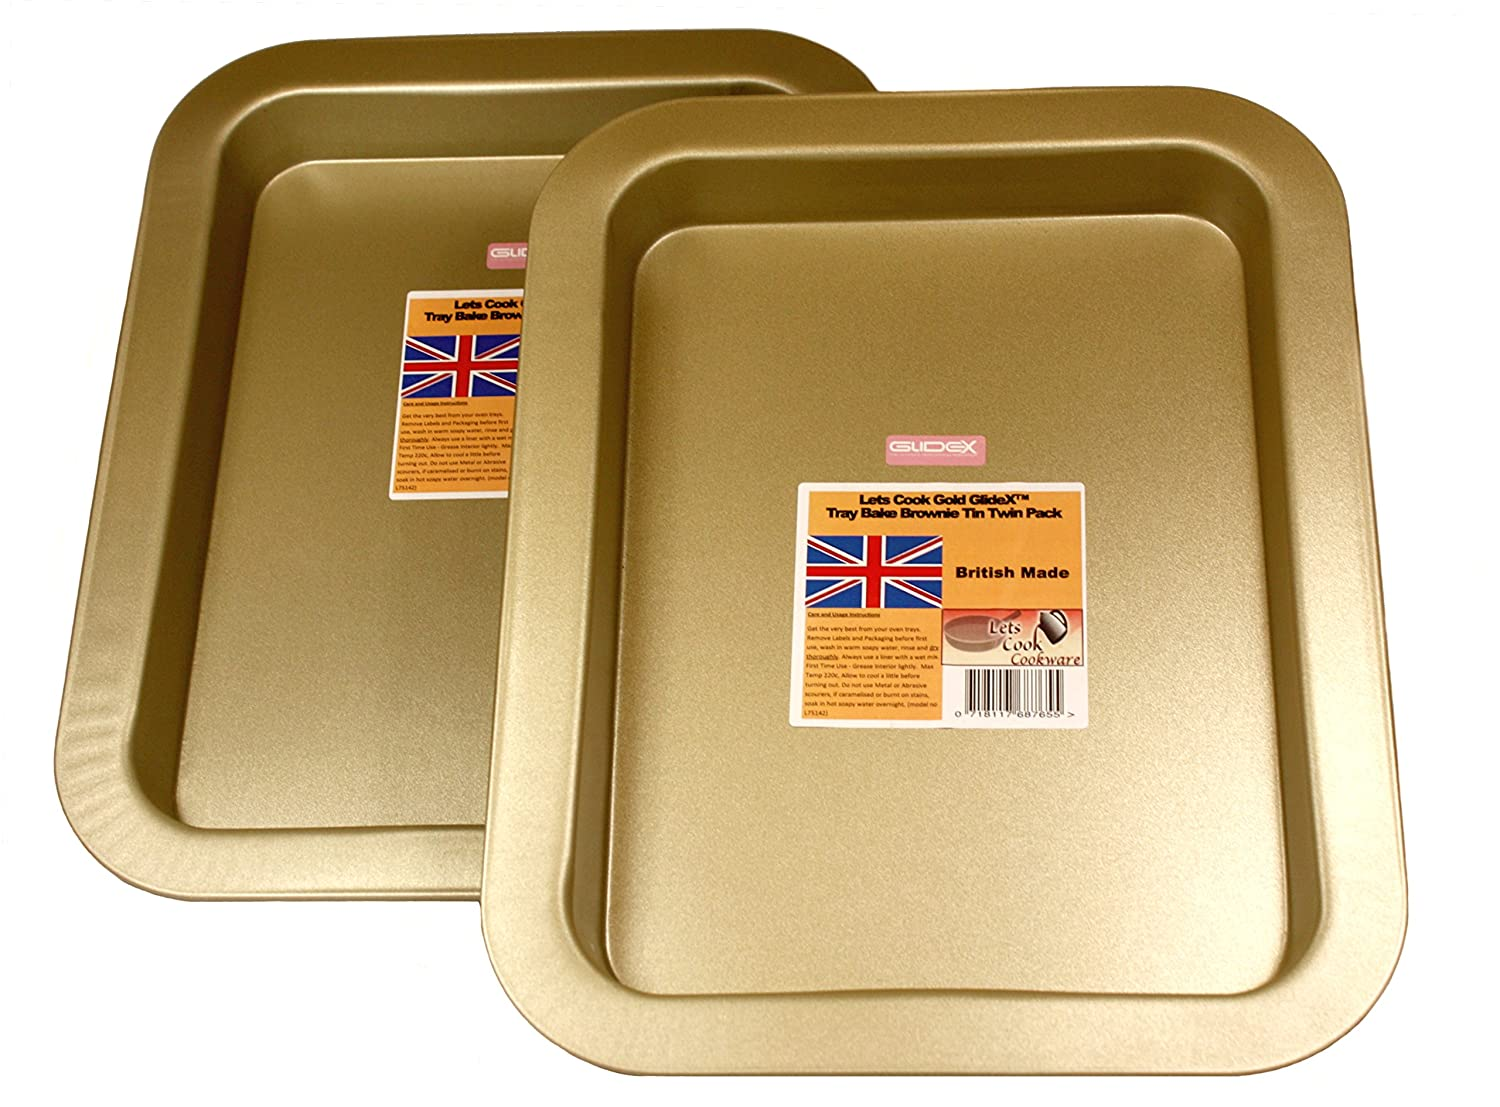 Large Deep Tray Bakes, Brownie Tins, Twin Pack, British Made with Gold GlideX Non Stick by Lets Cook Cookware